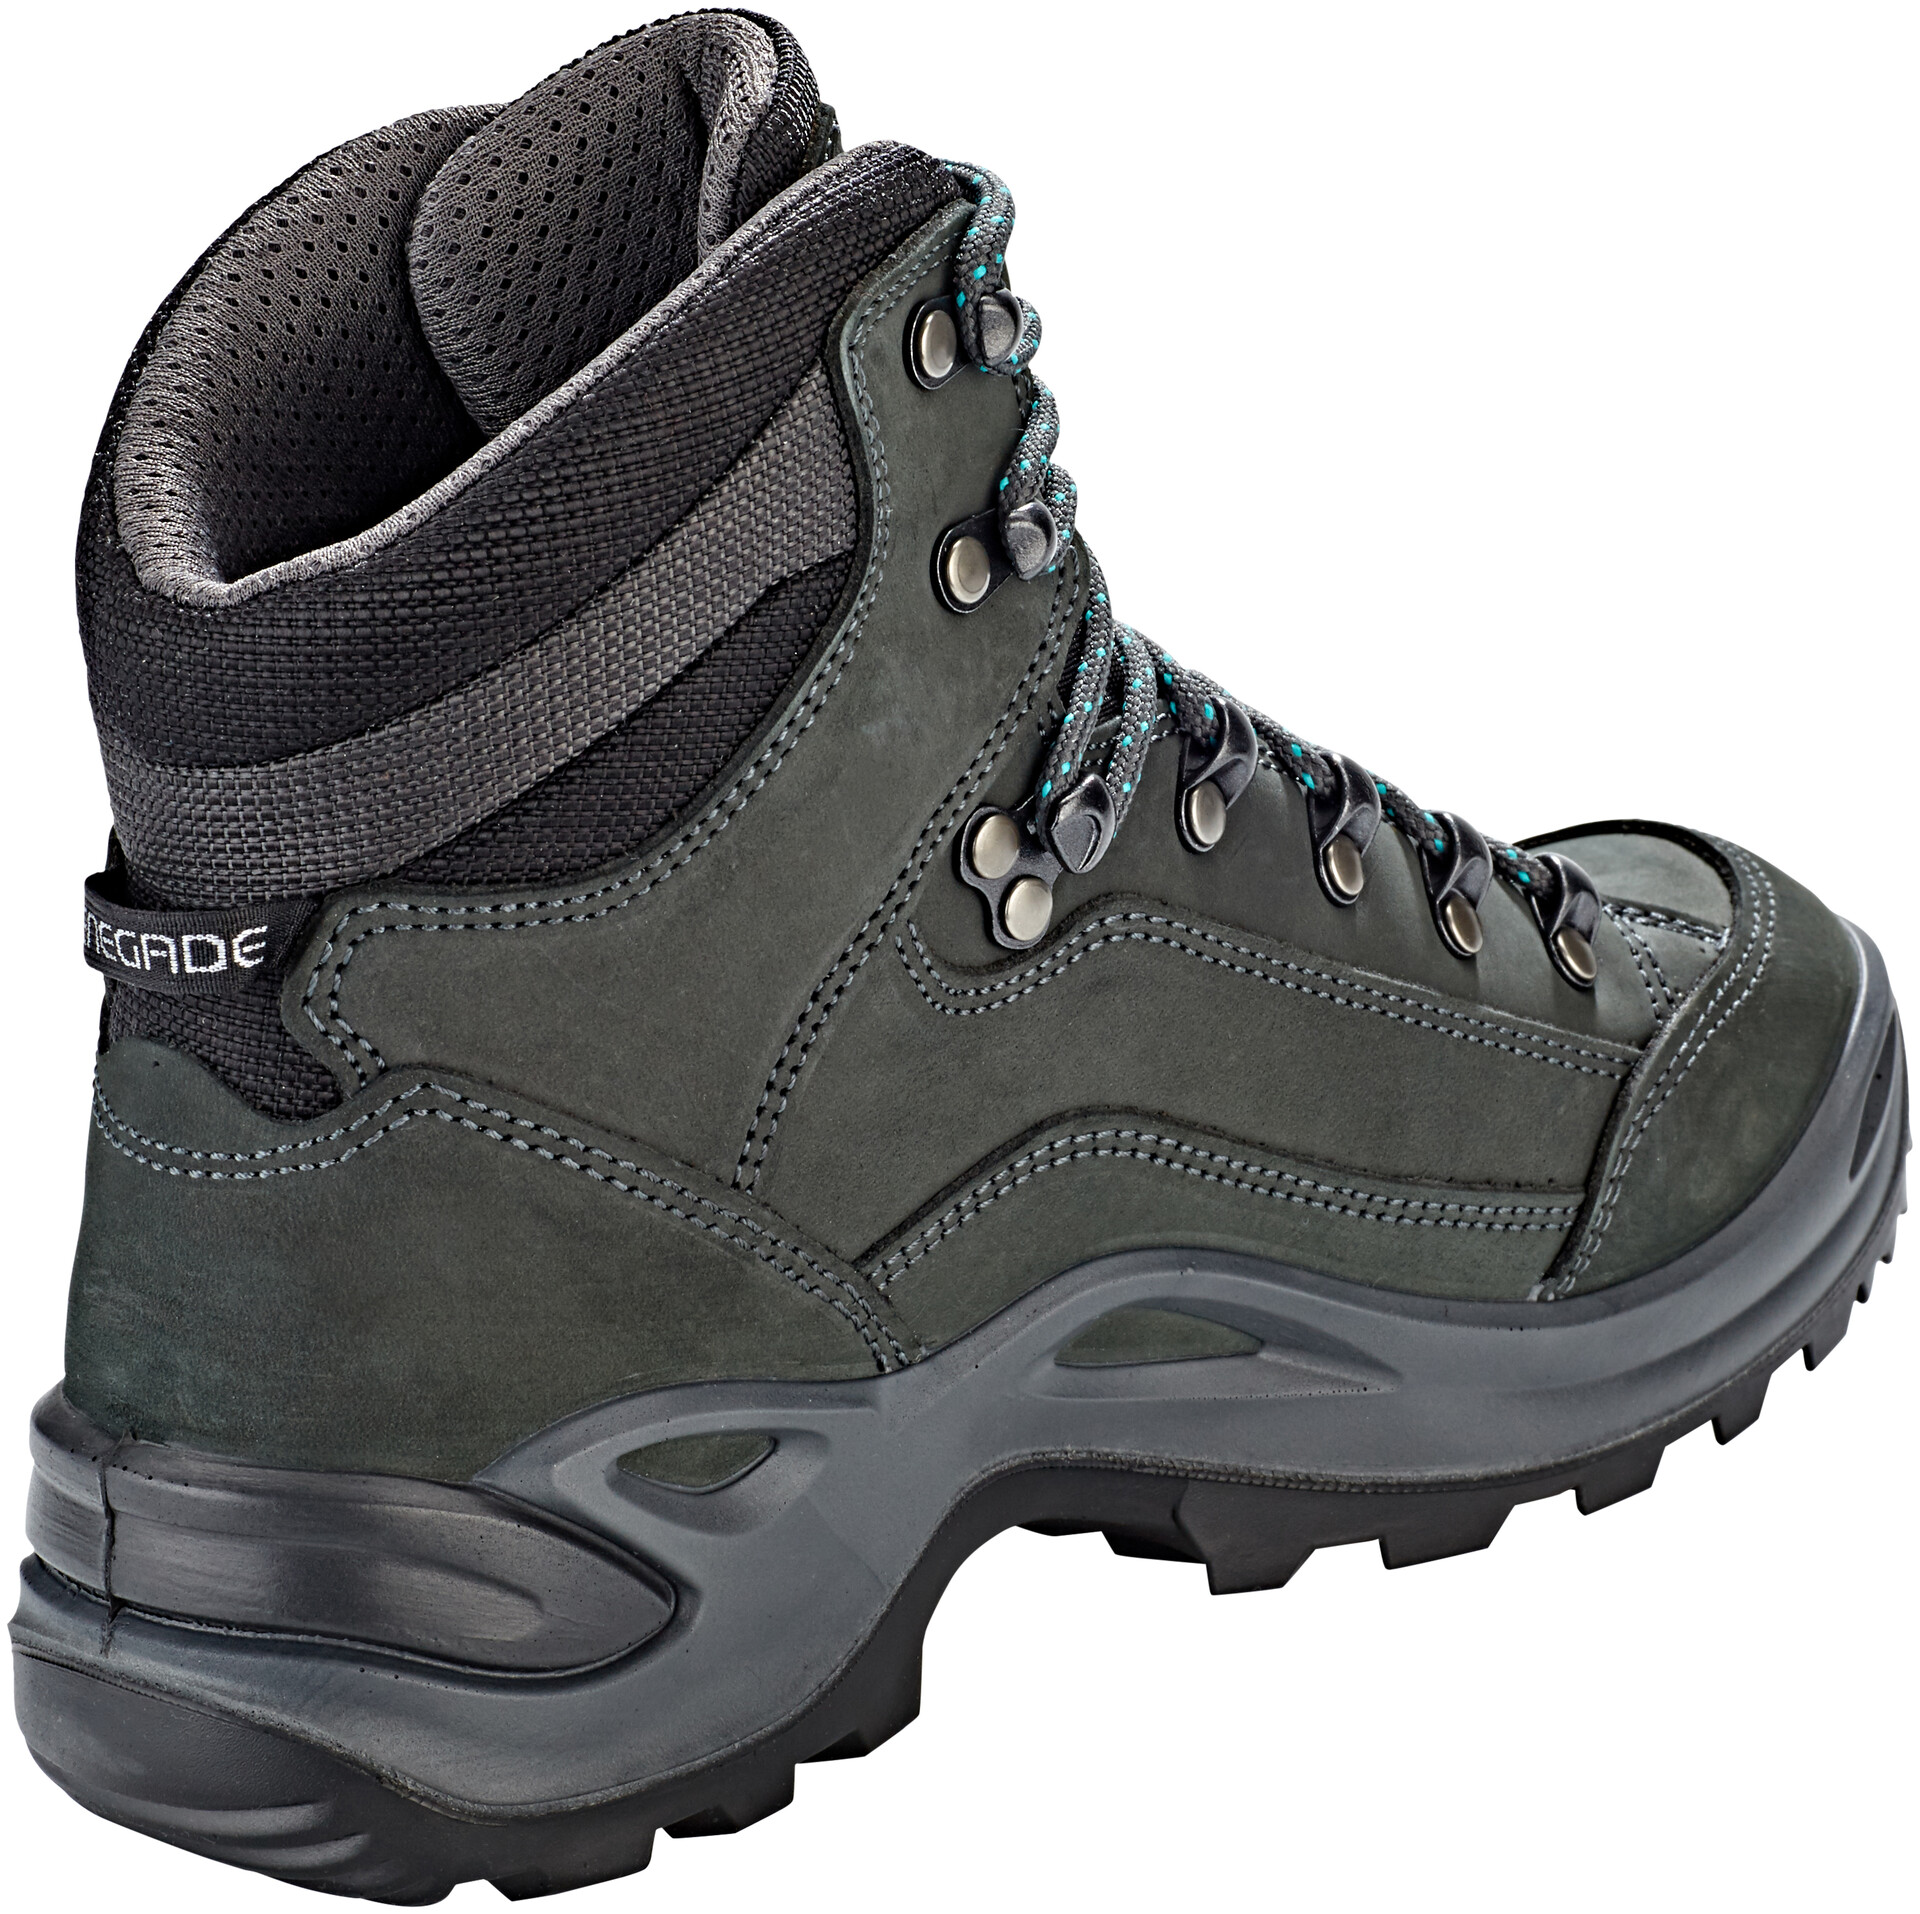 Lowa Gtx WomenAsphaltturquoise Shoes Renegade Mid Kc1TJulF3